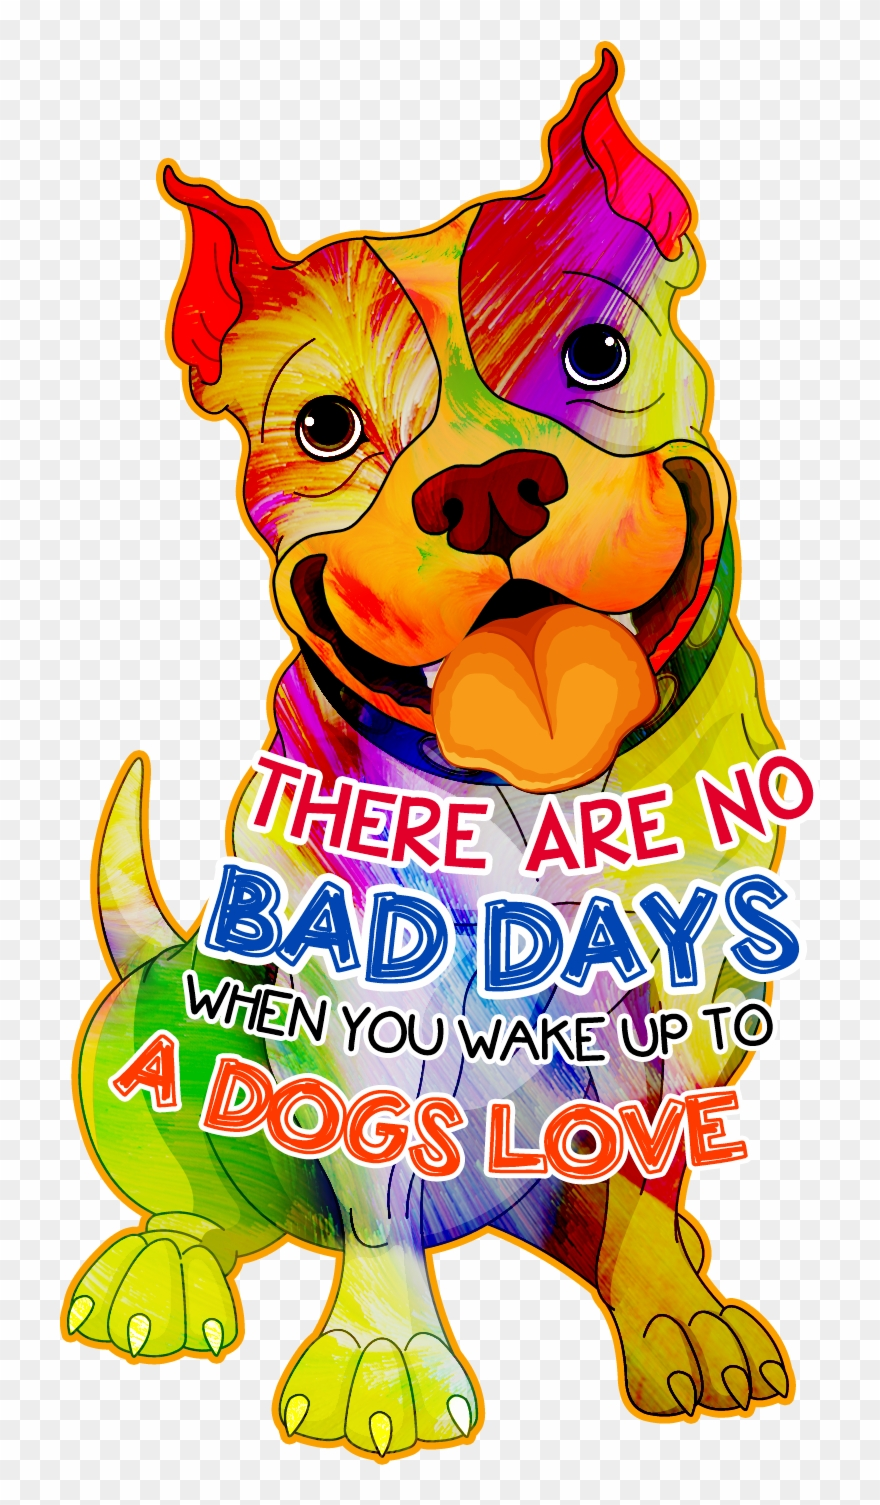 medium resolution of there are no bad days when you wake up to a dog s love dog lover